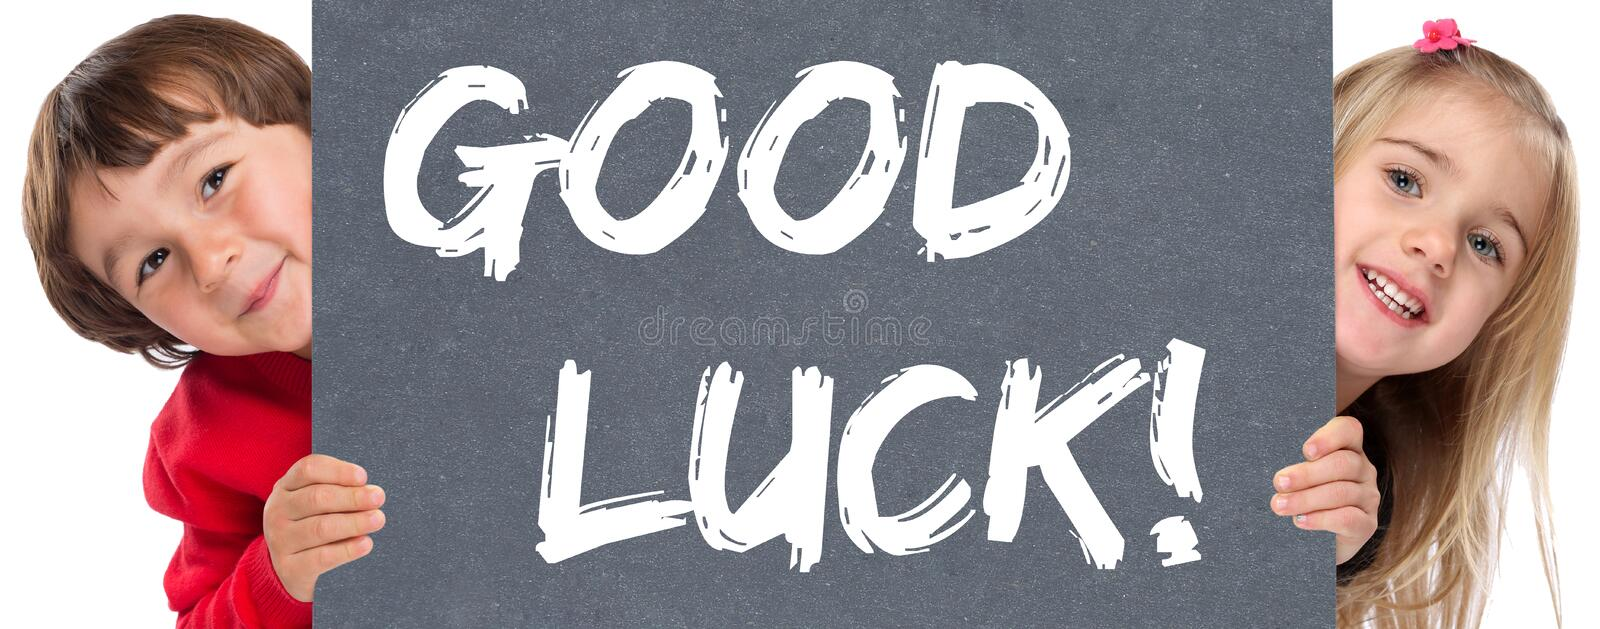 Good luck success successful test wish wishing young children royalty free stock images